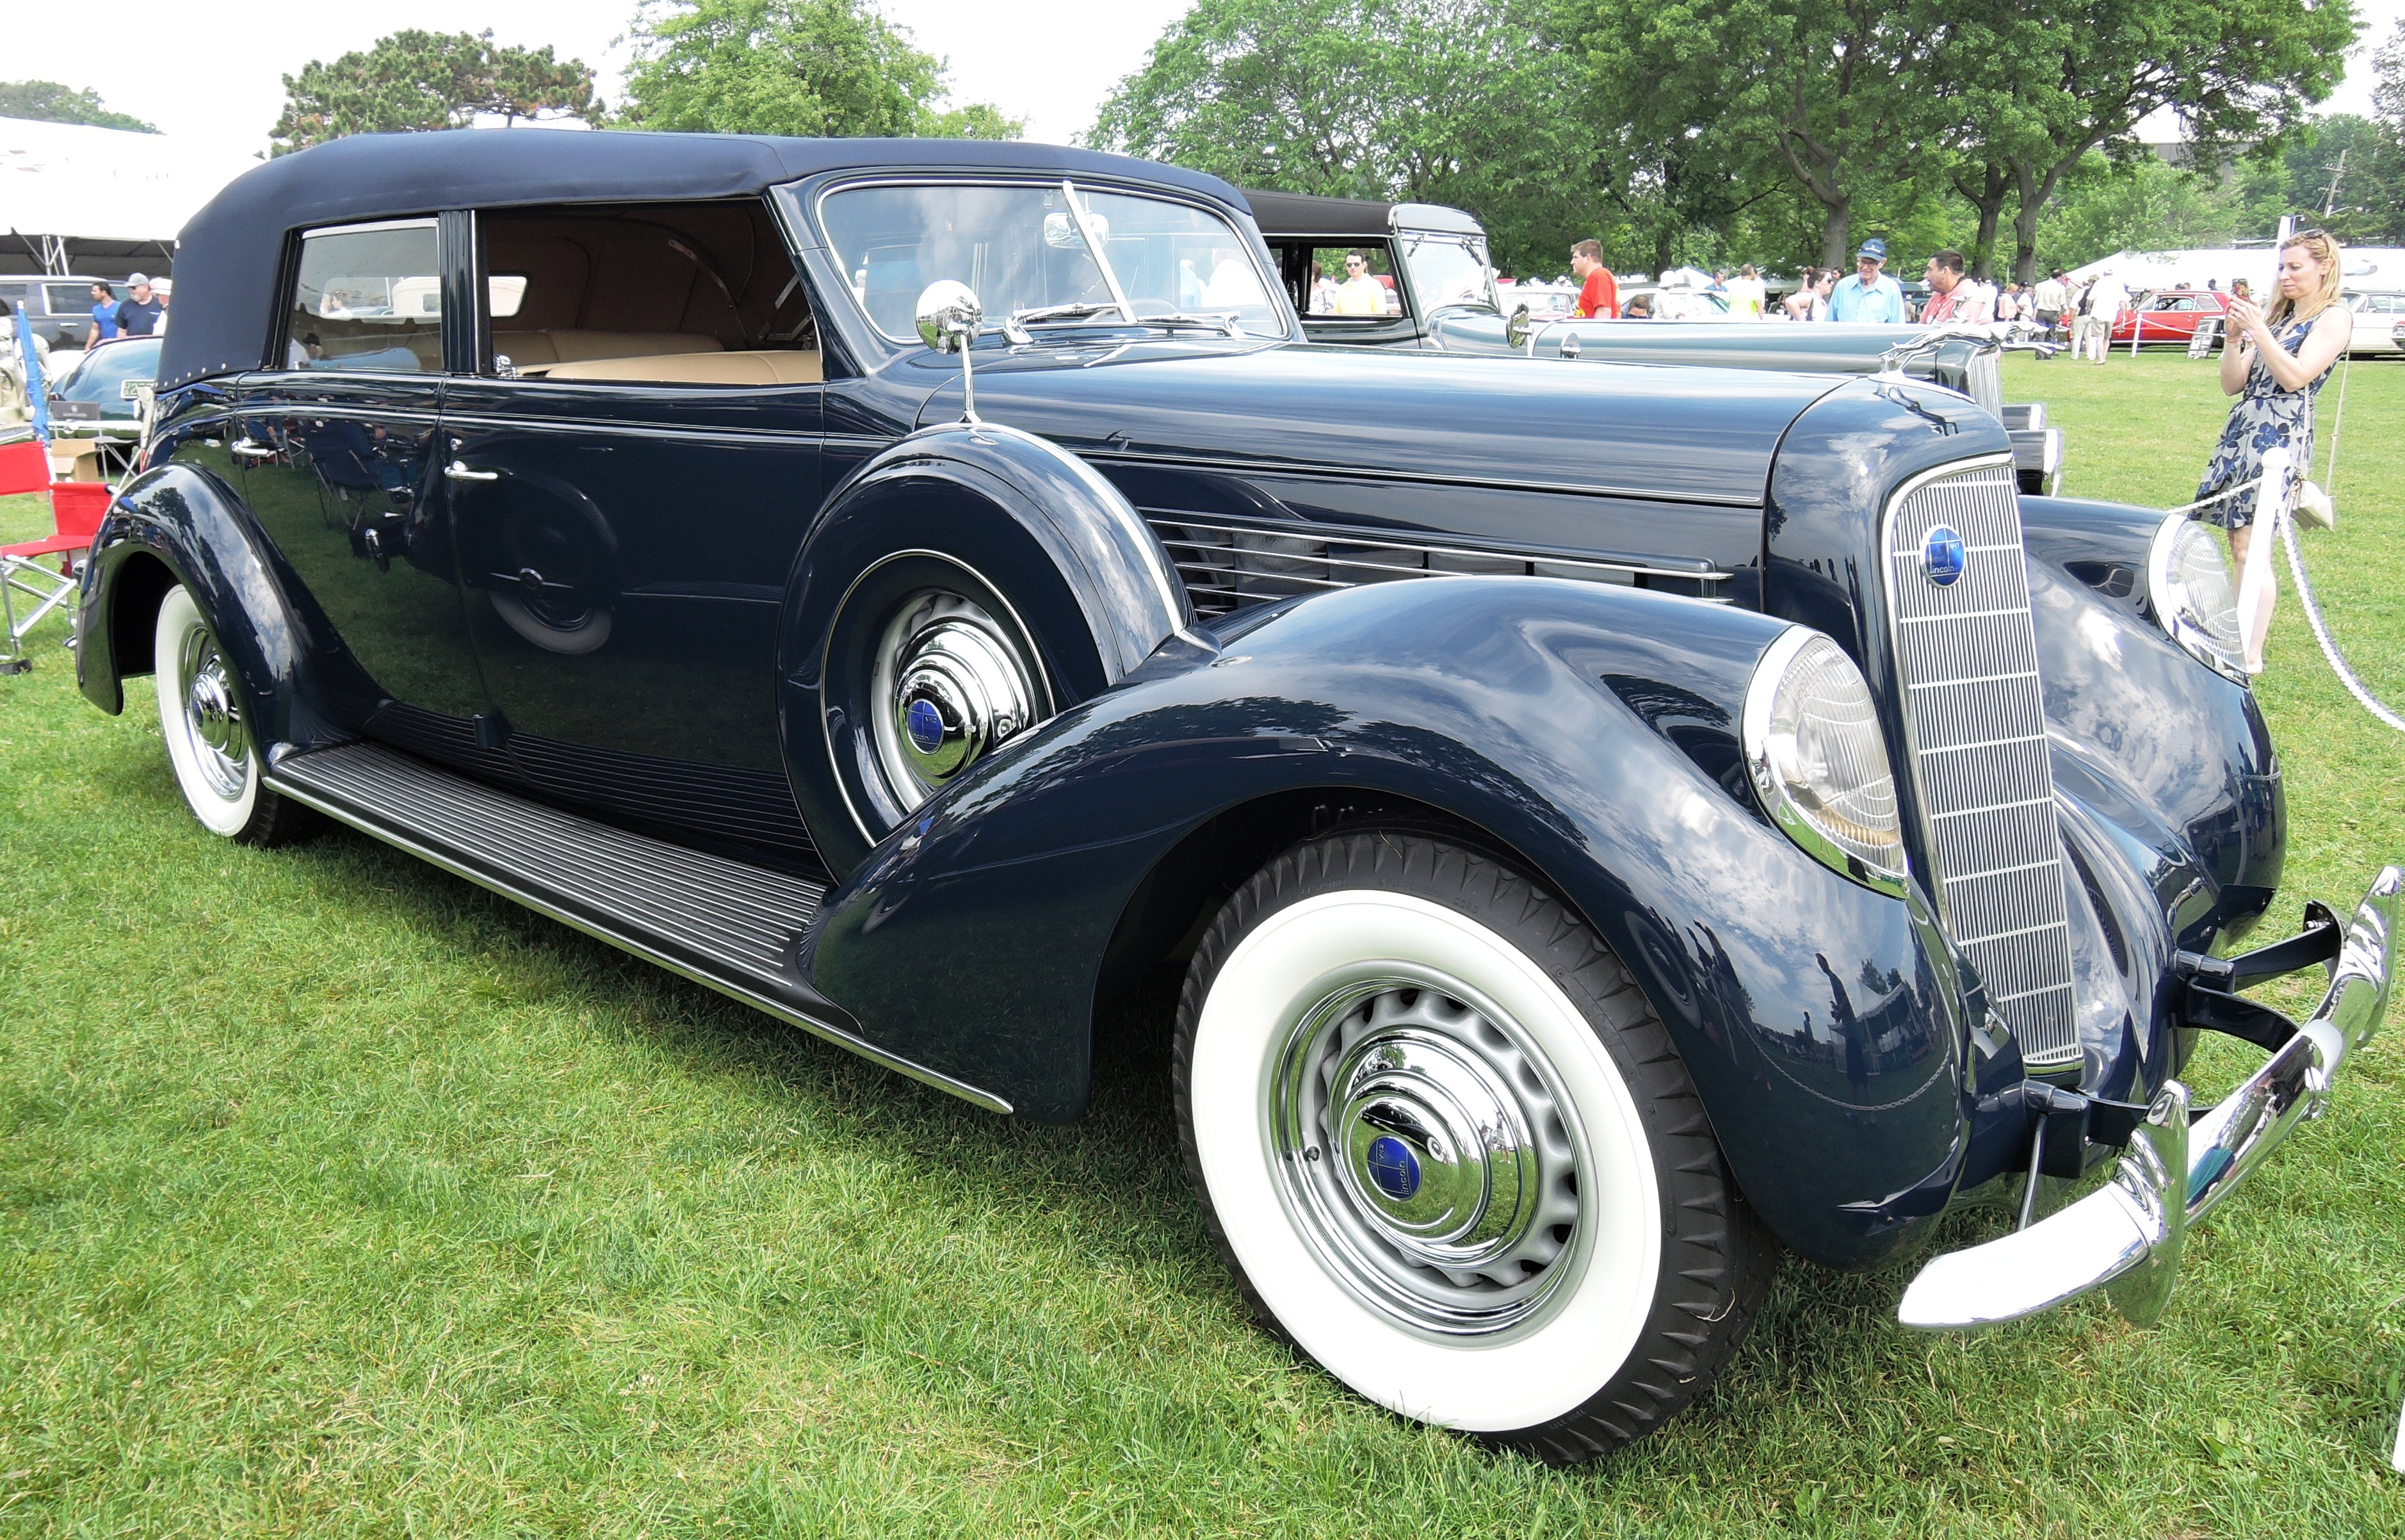 blue 1938 Lincoln Model K LeBaron - greenwich concours